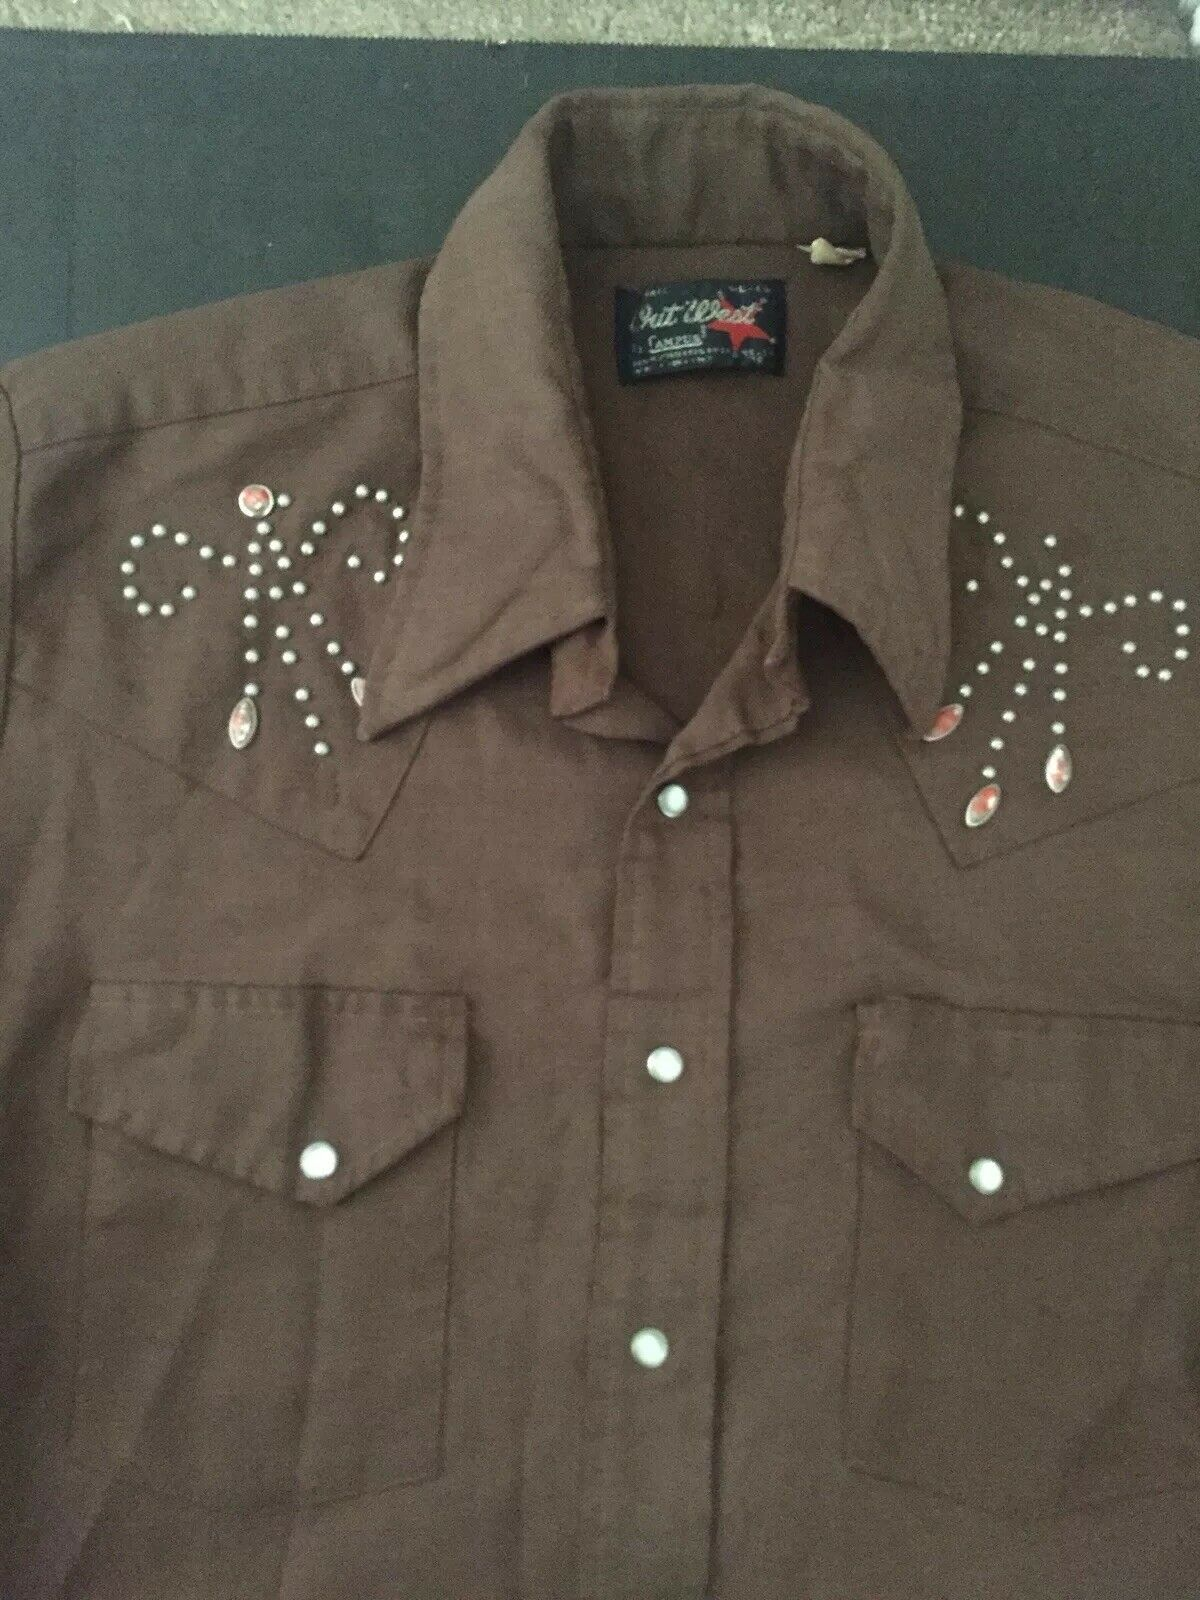 Campus Out West Vintage Western Shirt Embroidered Rhinestones Rare